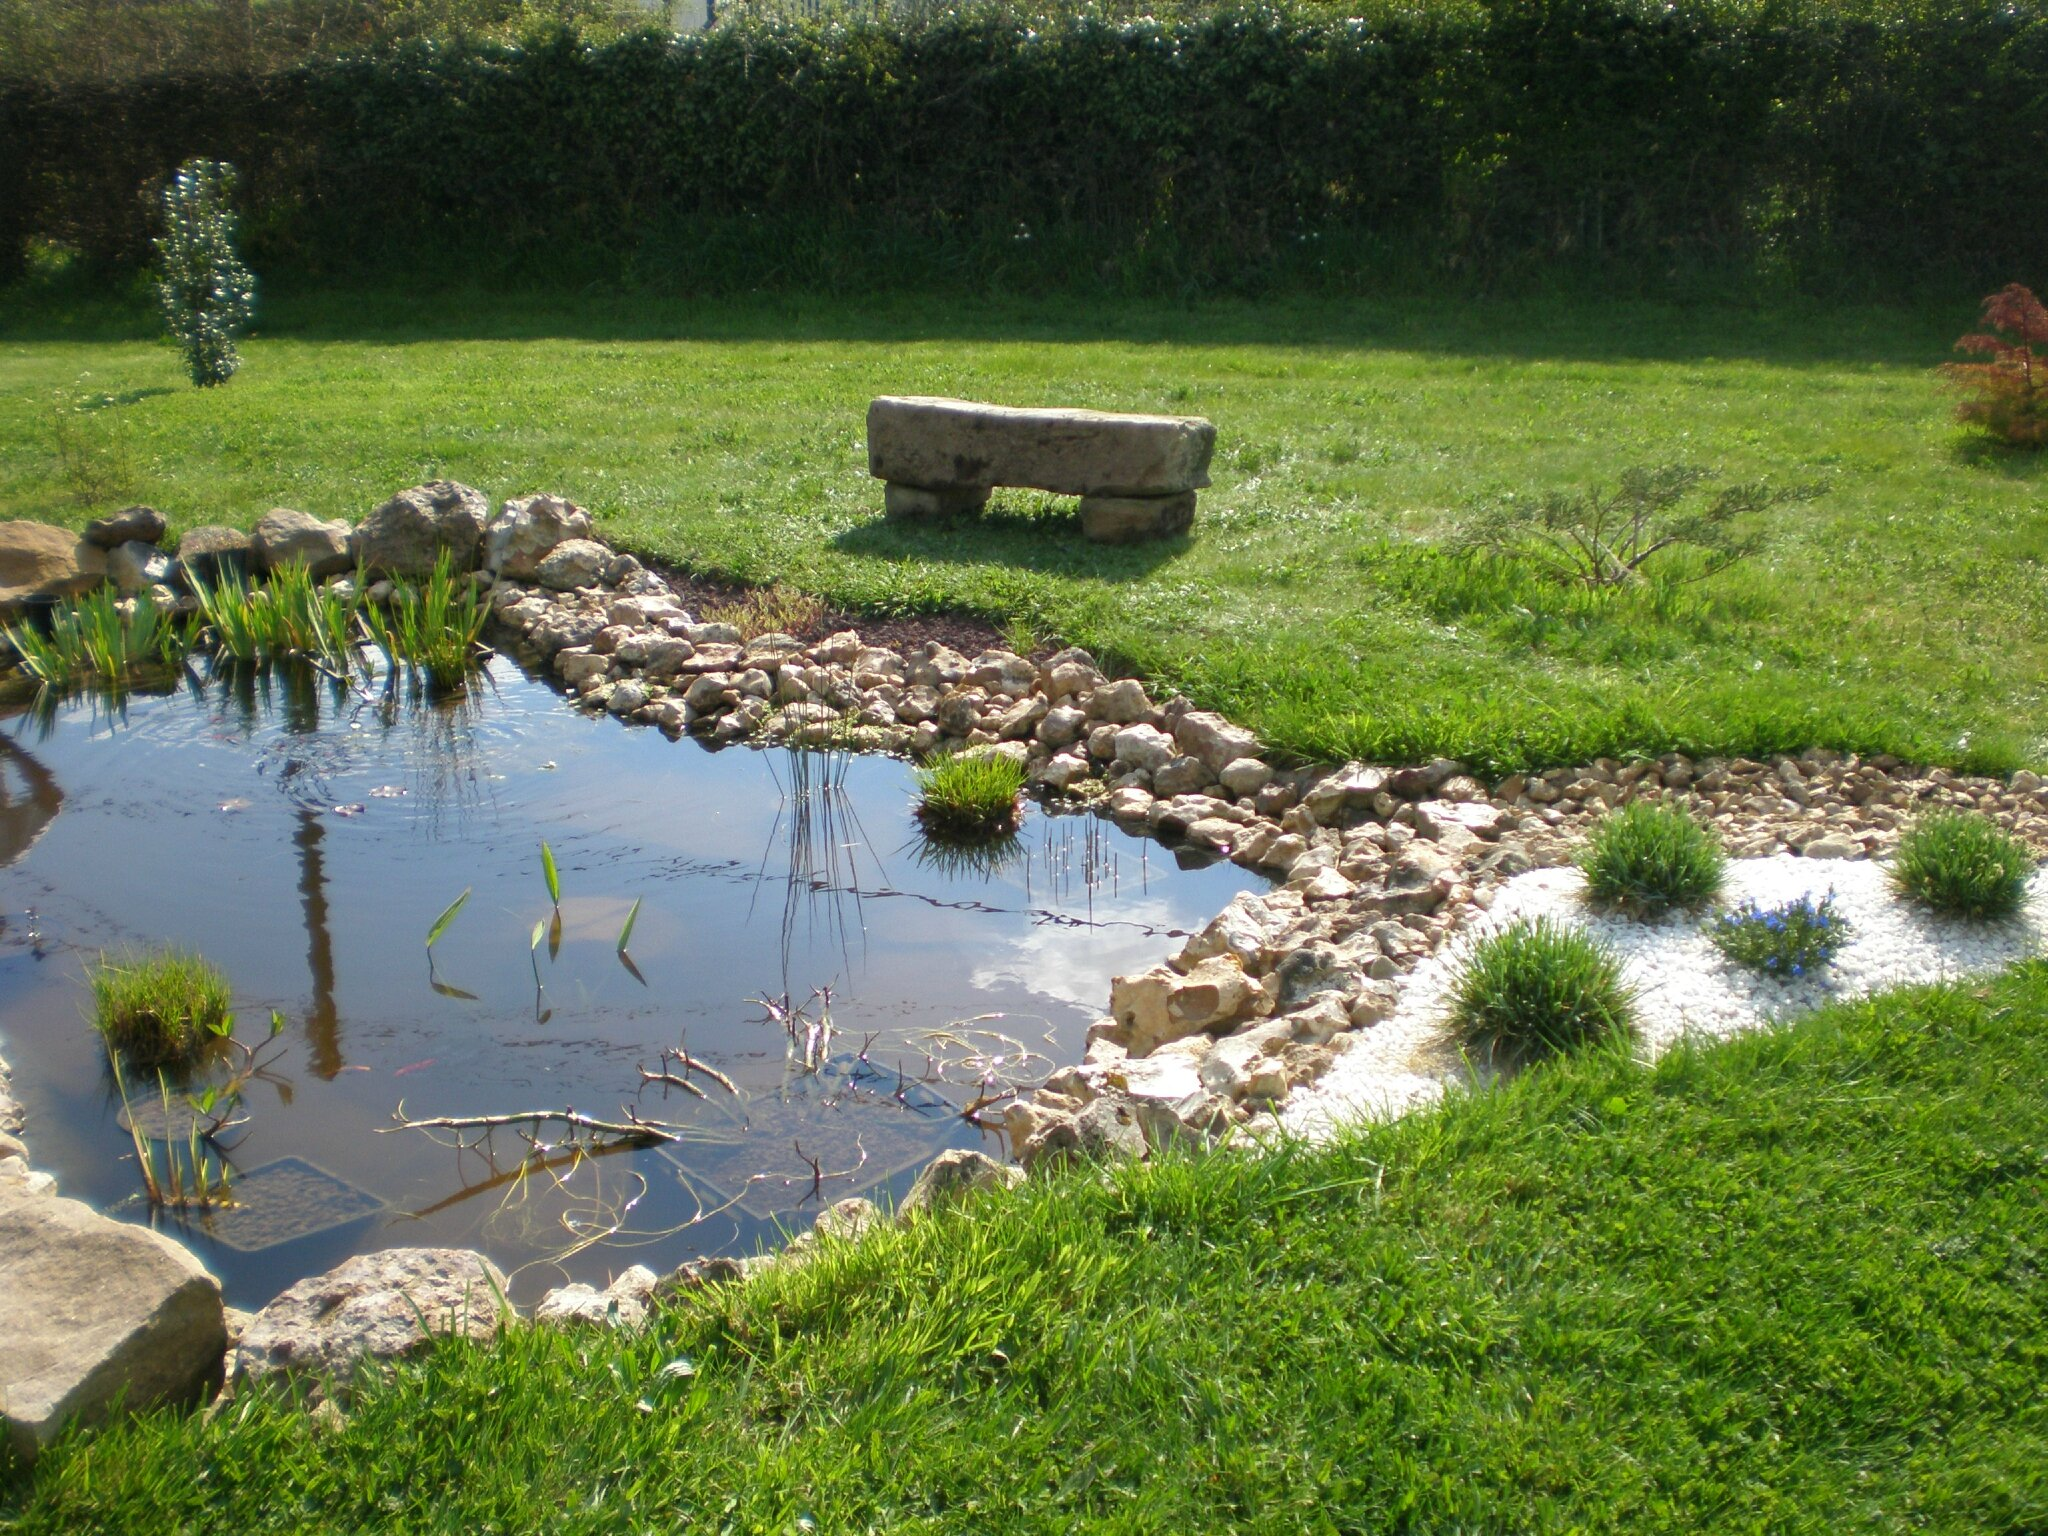 Bassin ornement jardin bassin de jardin for Bassin artificiel jardin